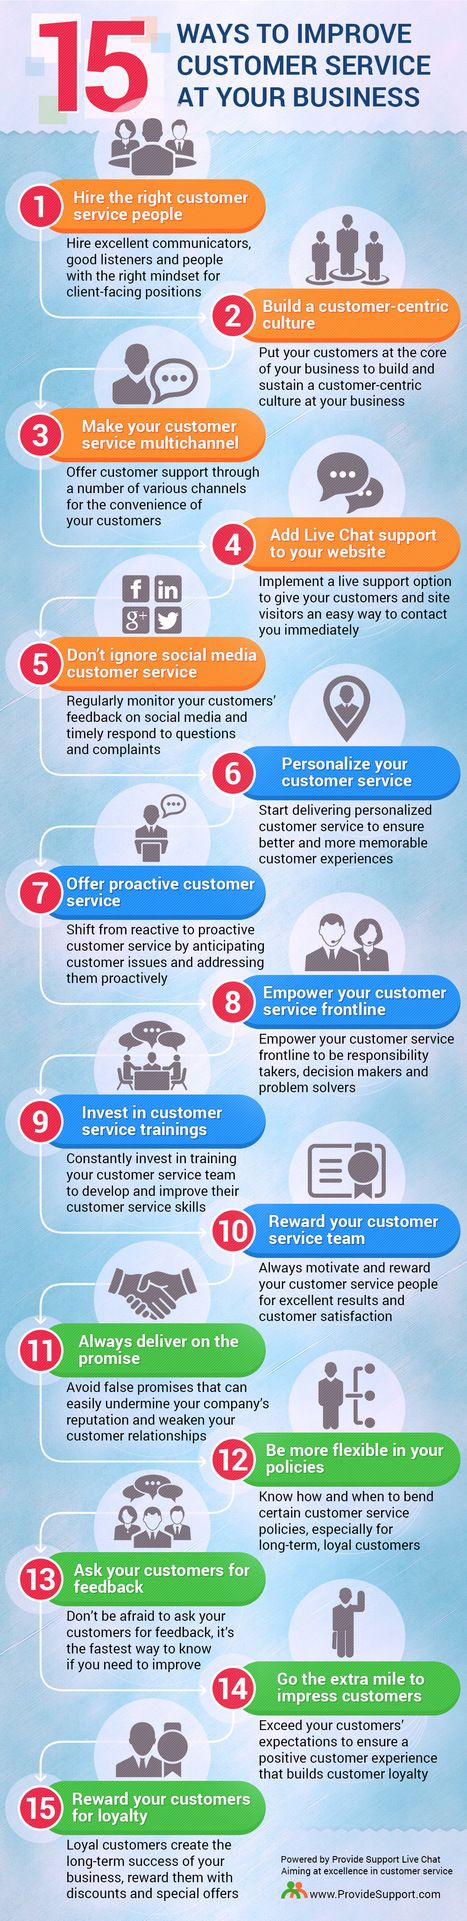 enhance customer service experience Learn the key principles of good customer service and find out how to build  customer relationships.